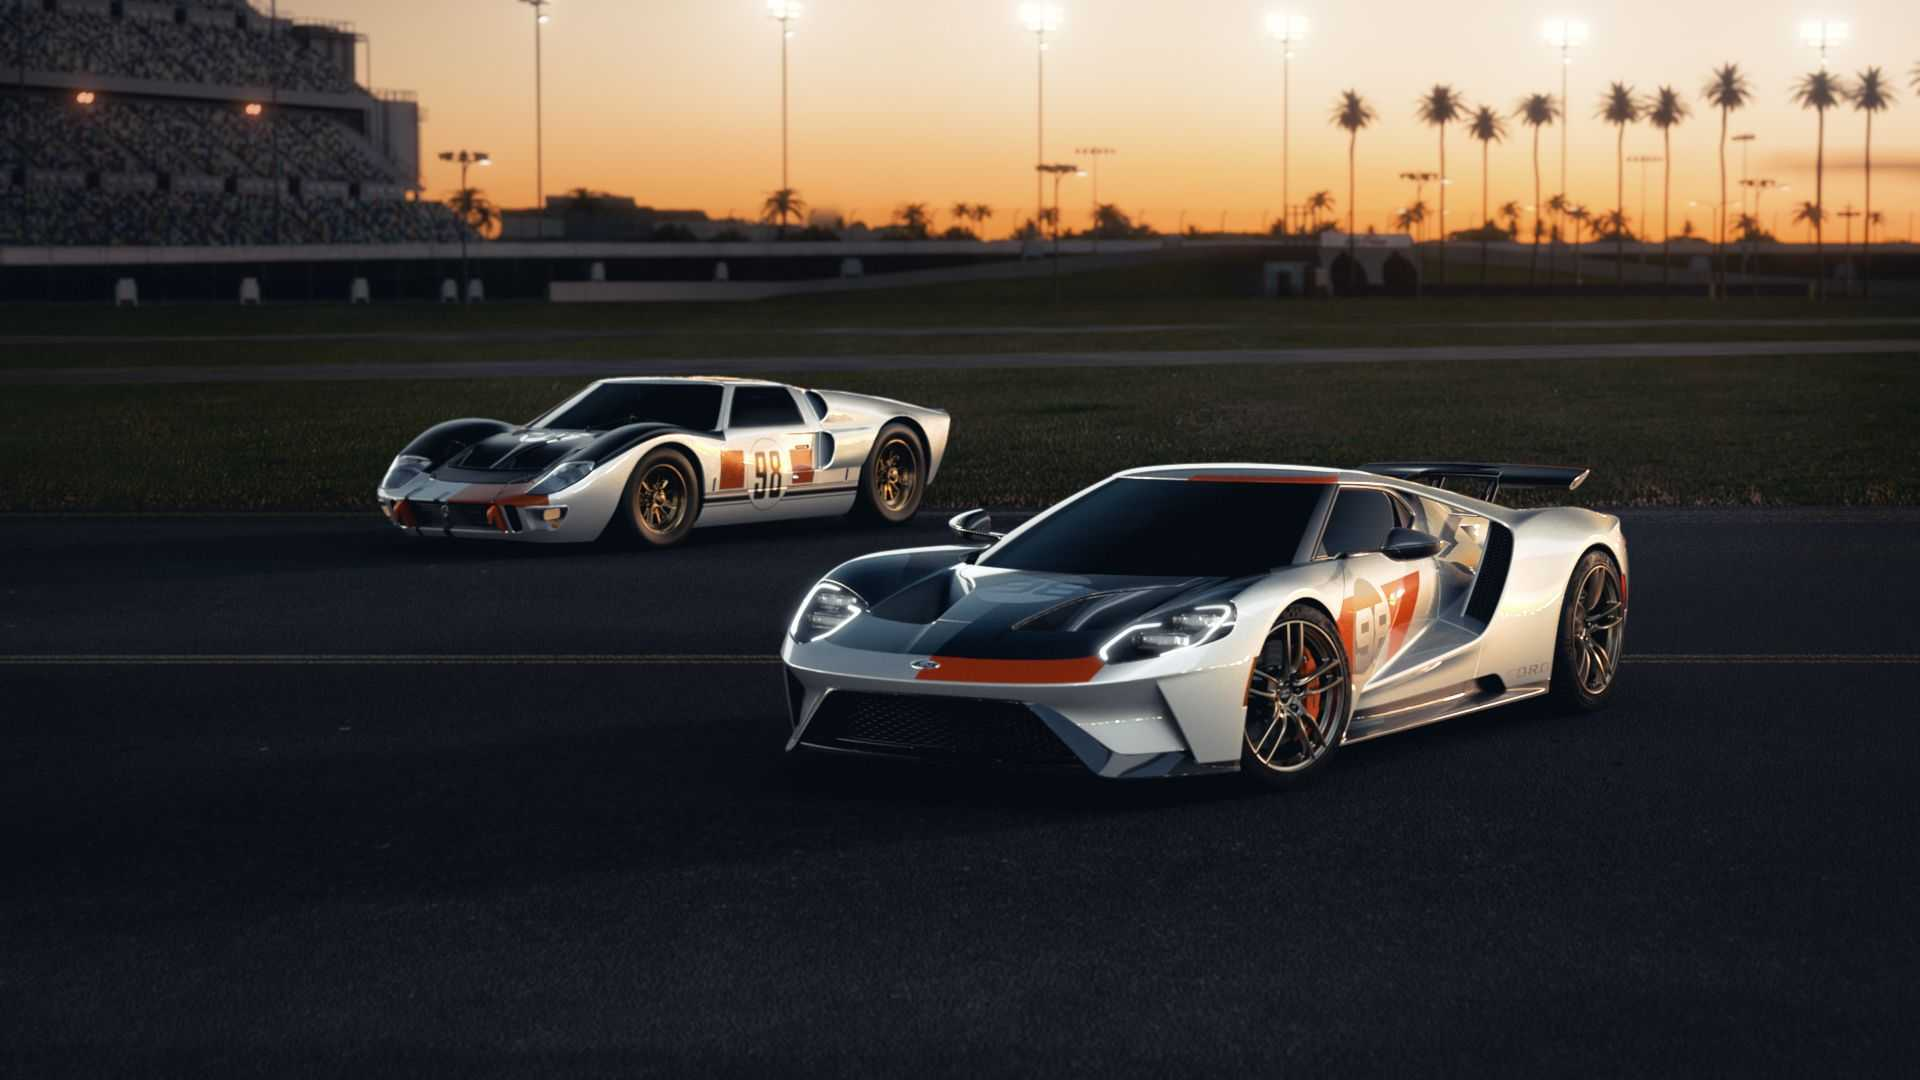 2021-ford-gt-heritage-edition-with-original-gt40-rear-close-up.jpg